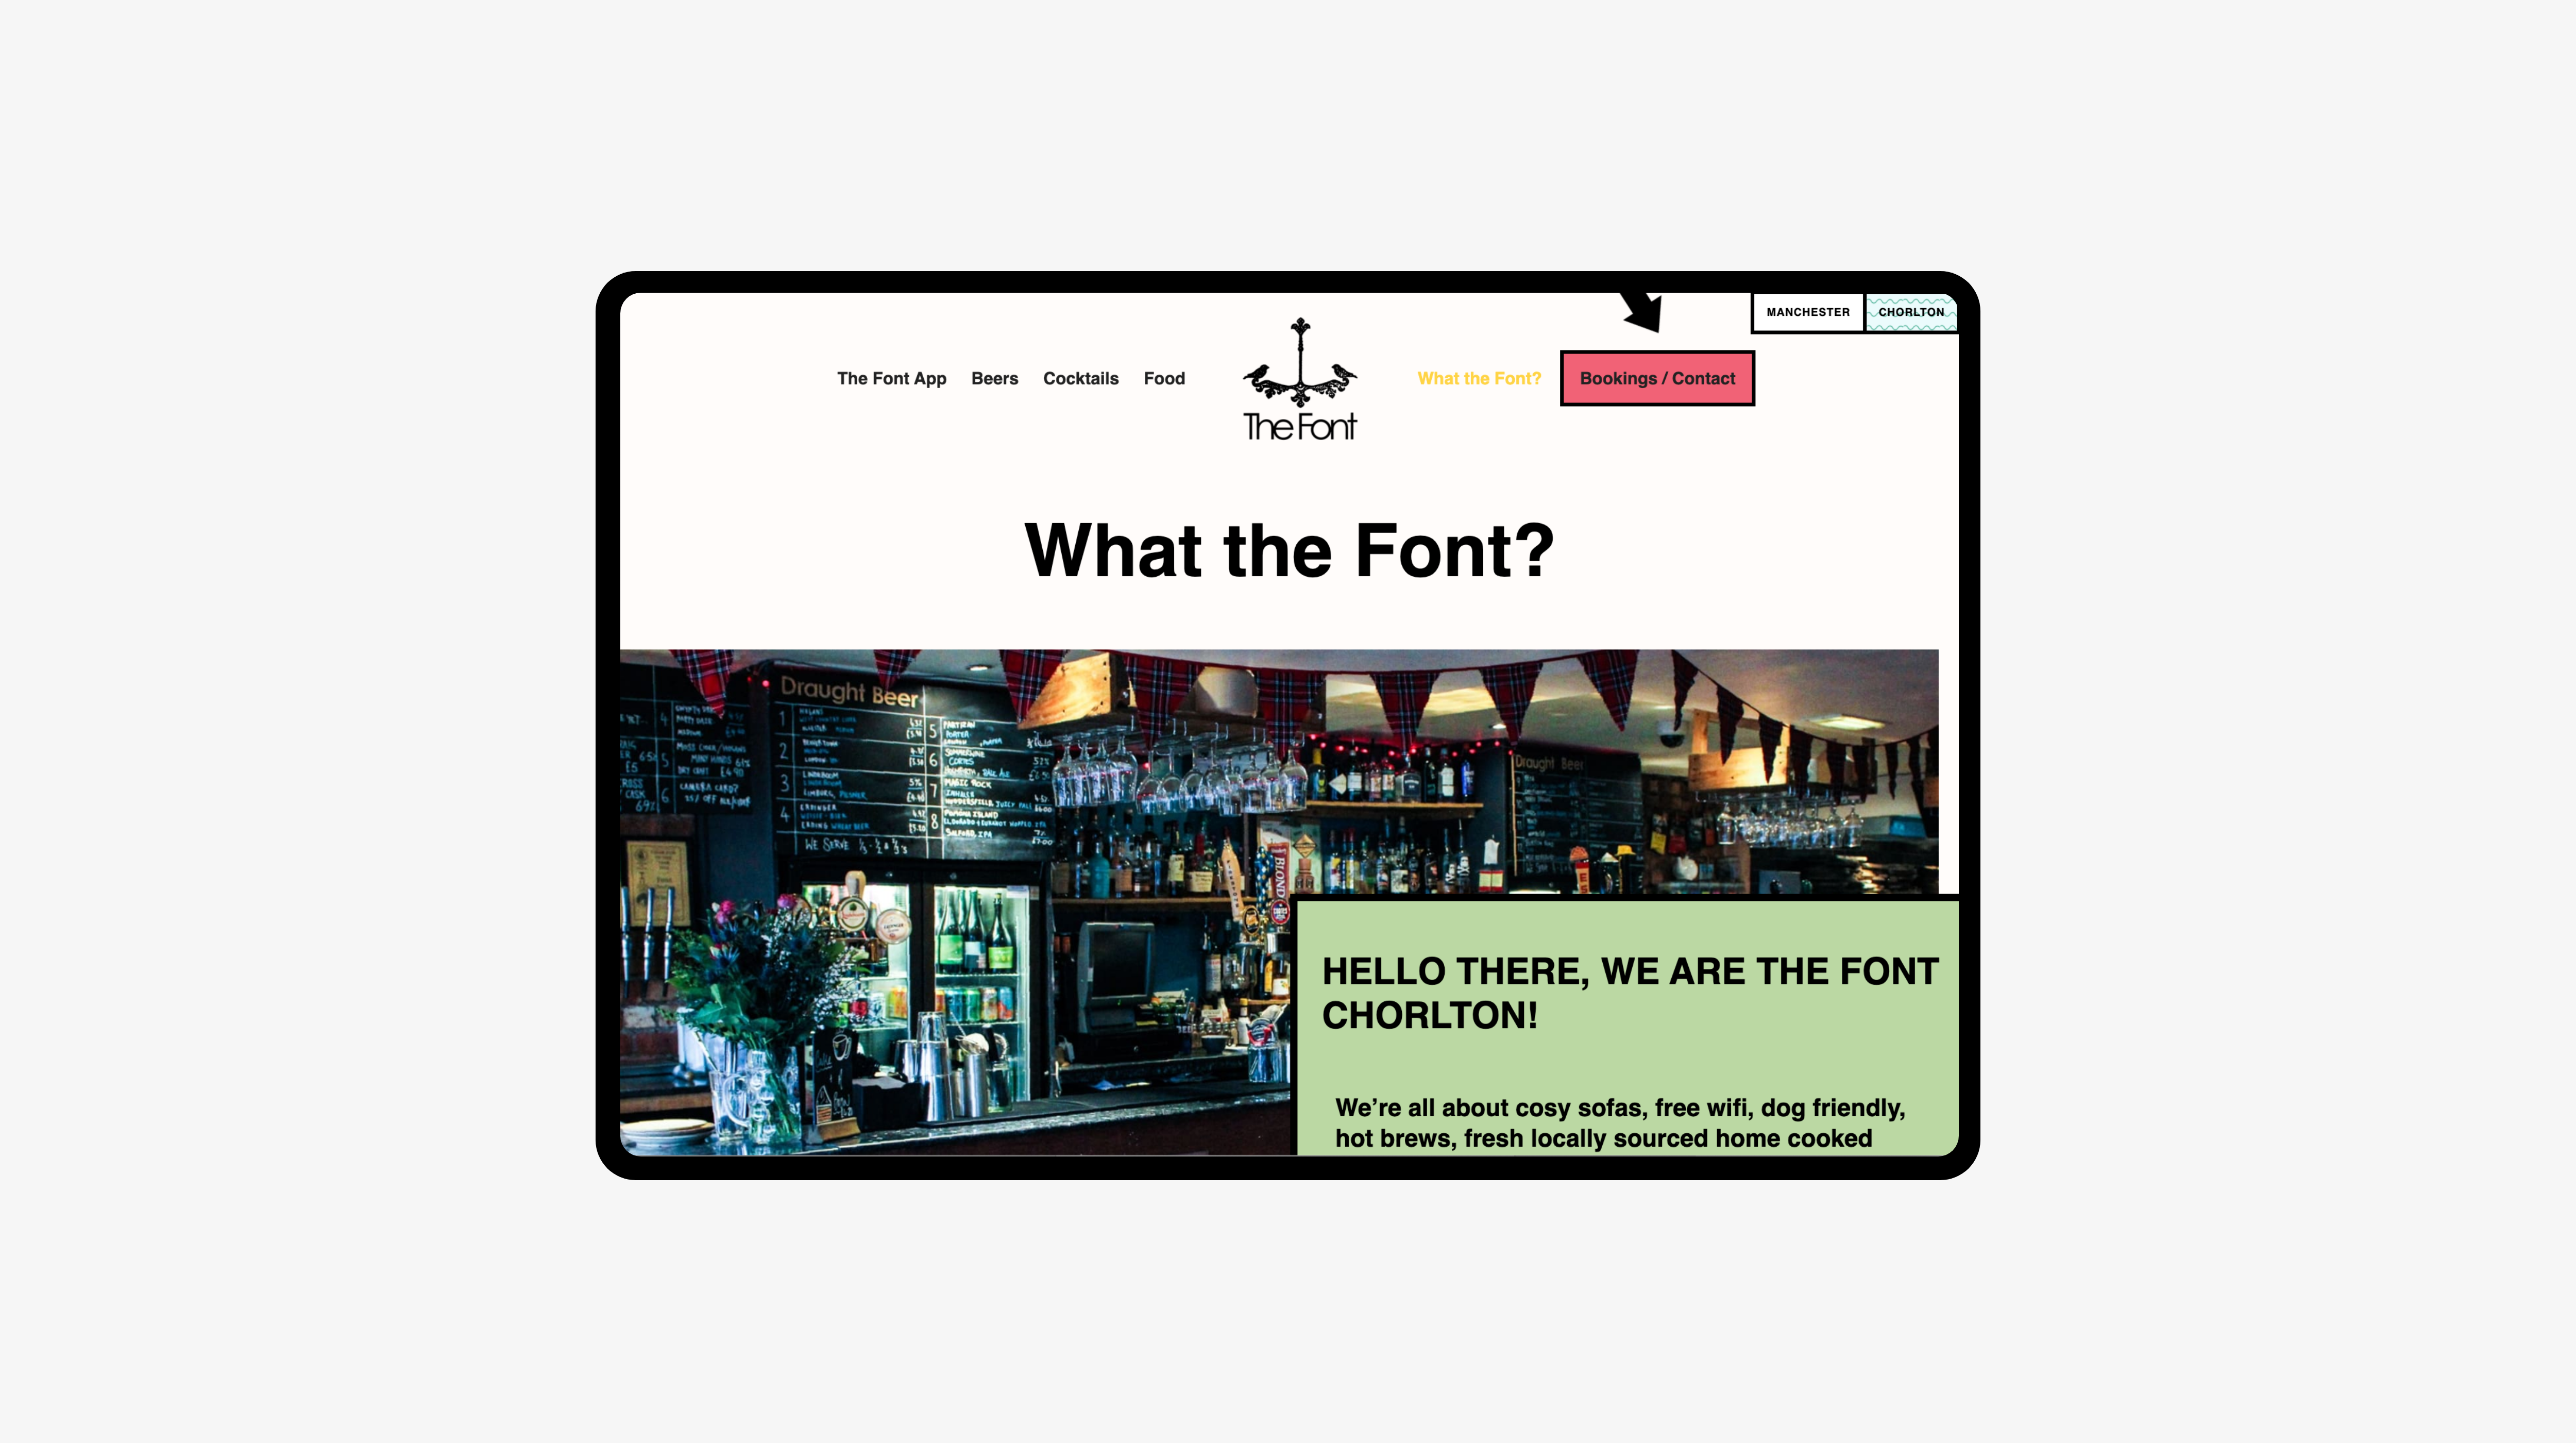 What the Font? page